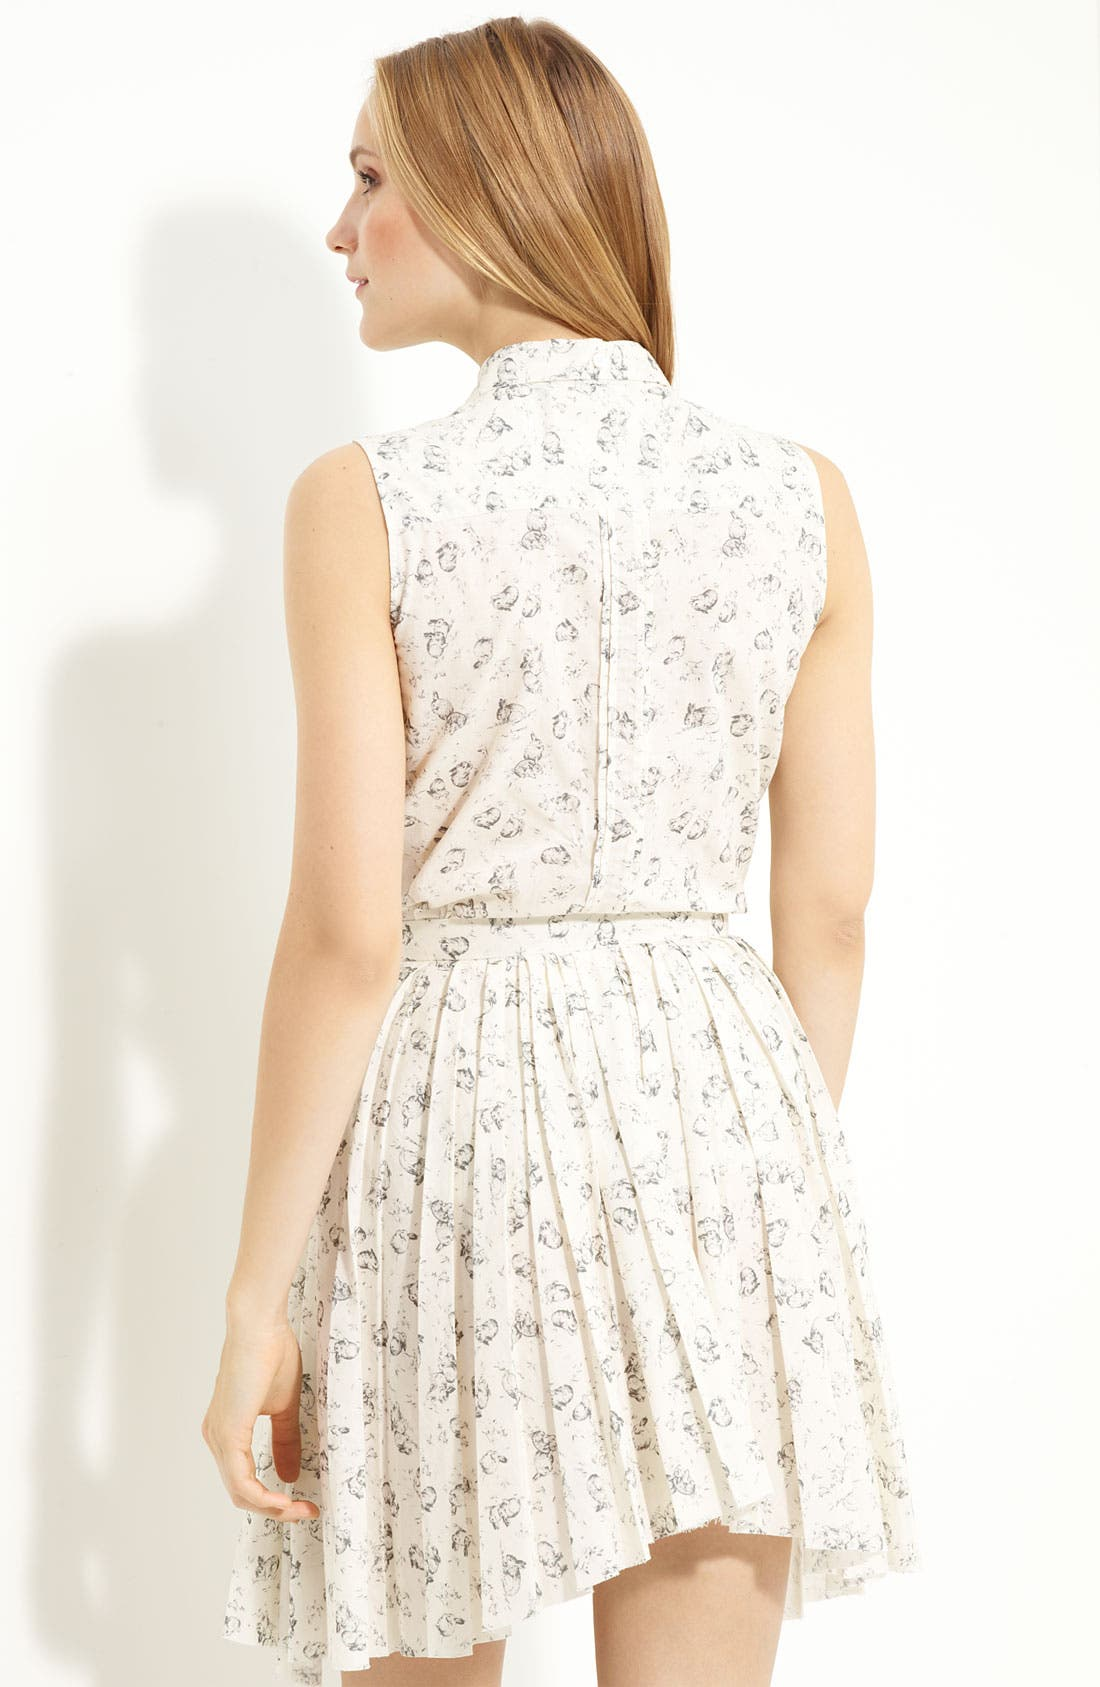 BOY. BY BAND OF OUTSIDERS, Band of Outsiders Rabbit Print Sleeveless Top, Alternate thumbnail 3, color, 110